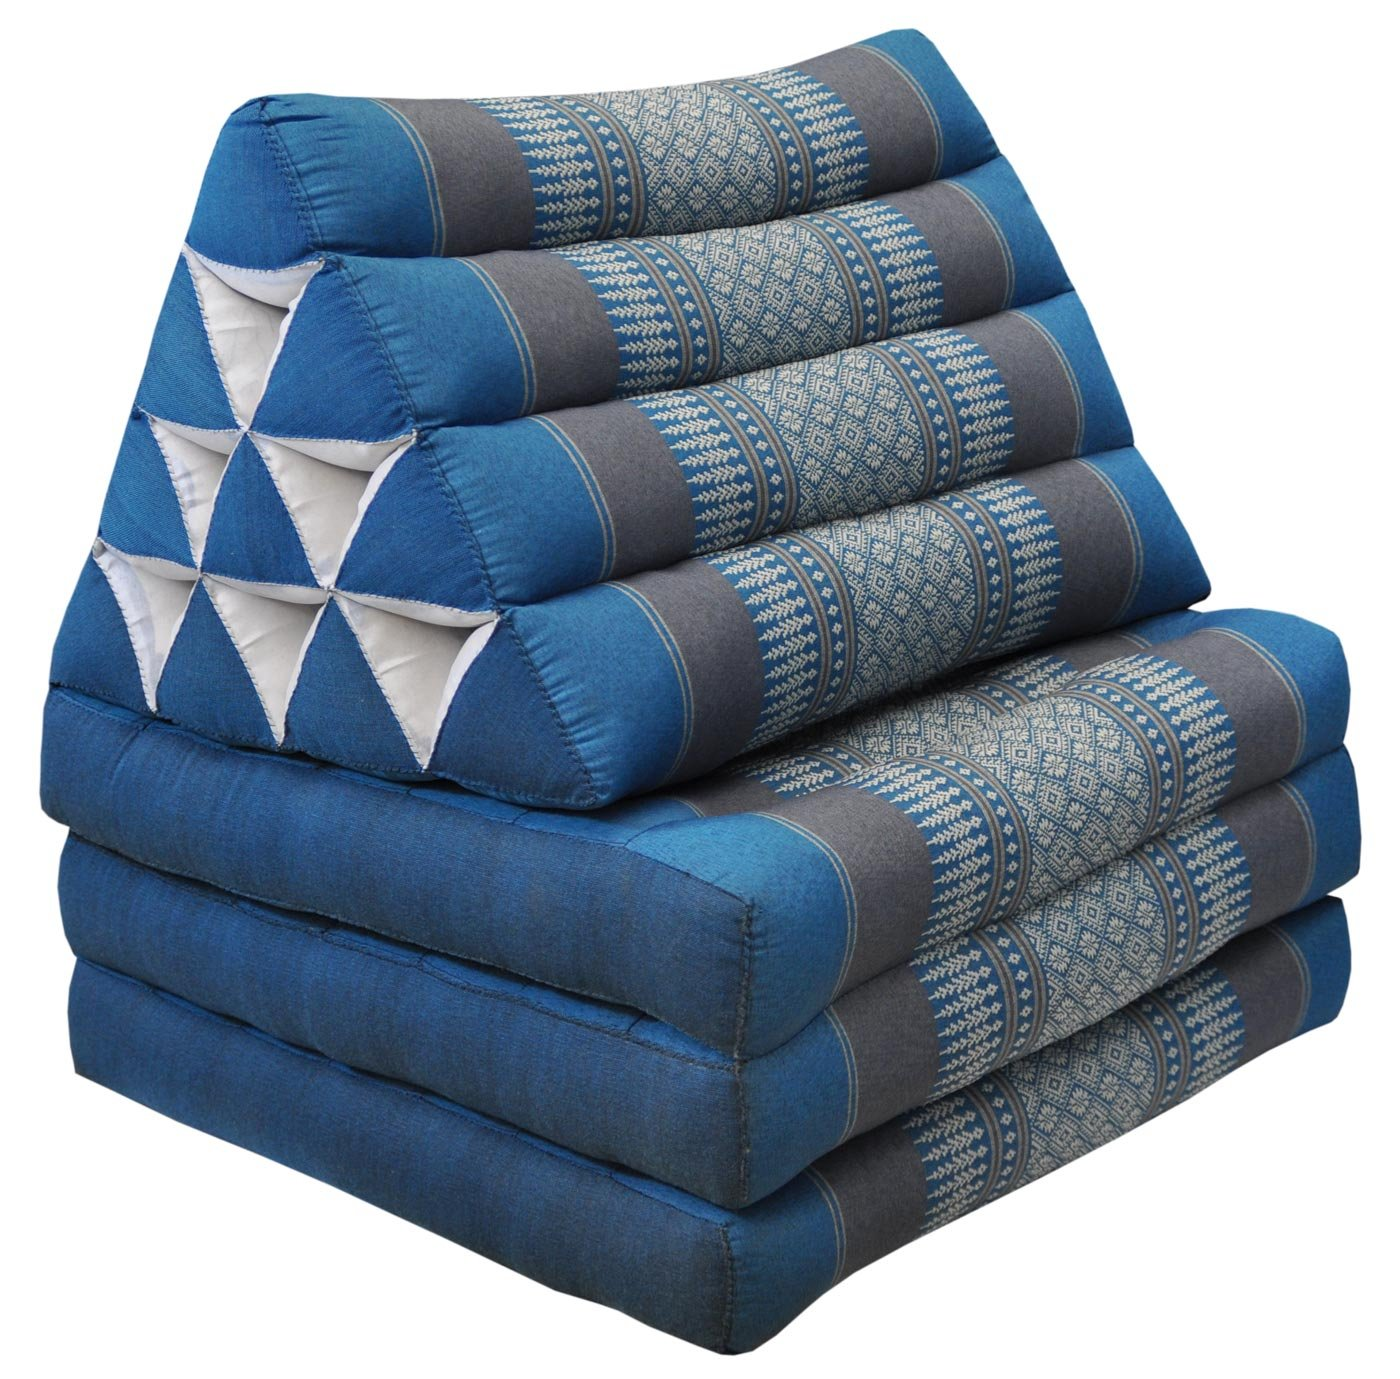 Thai mattress 3 folds with triangle cushion, blue/grey, relaxation, beach, pool, meditation garden (82603) by Wilai GmbH